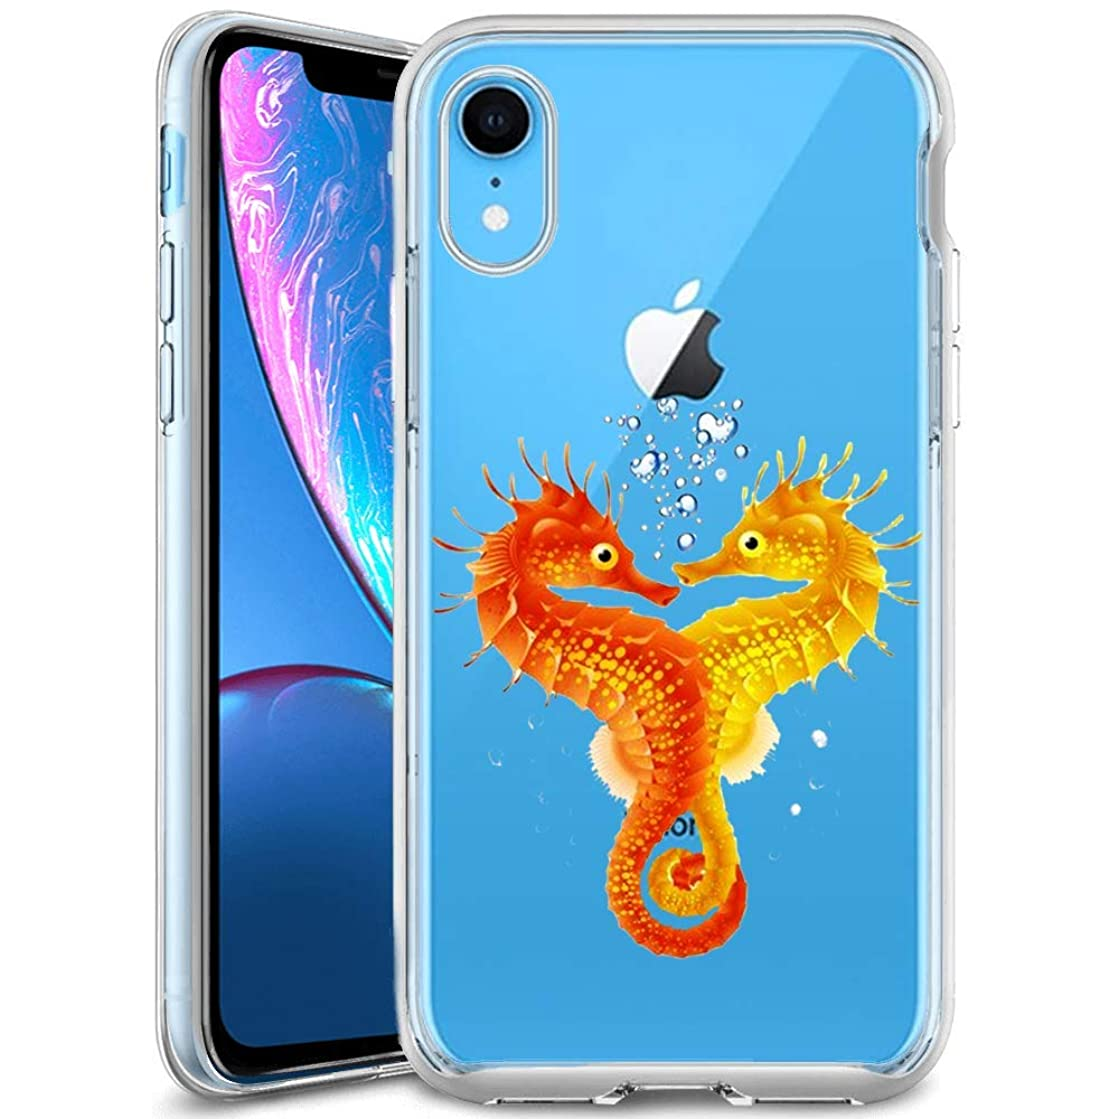 Customized Protective Cover with Slim Soft Durable TPU Ultra-Clear Silicone UV Printing Seahorse Lover Phone Case for iPhone Xr